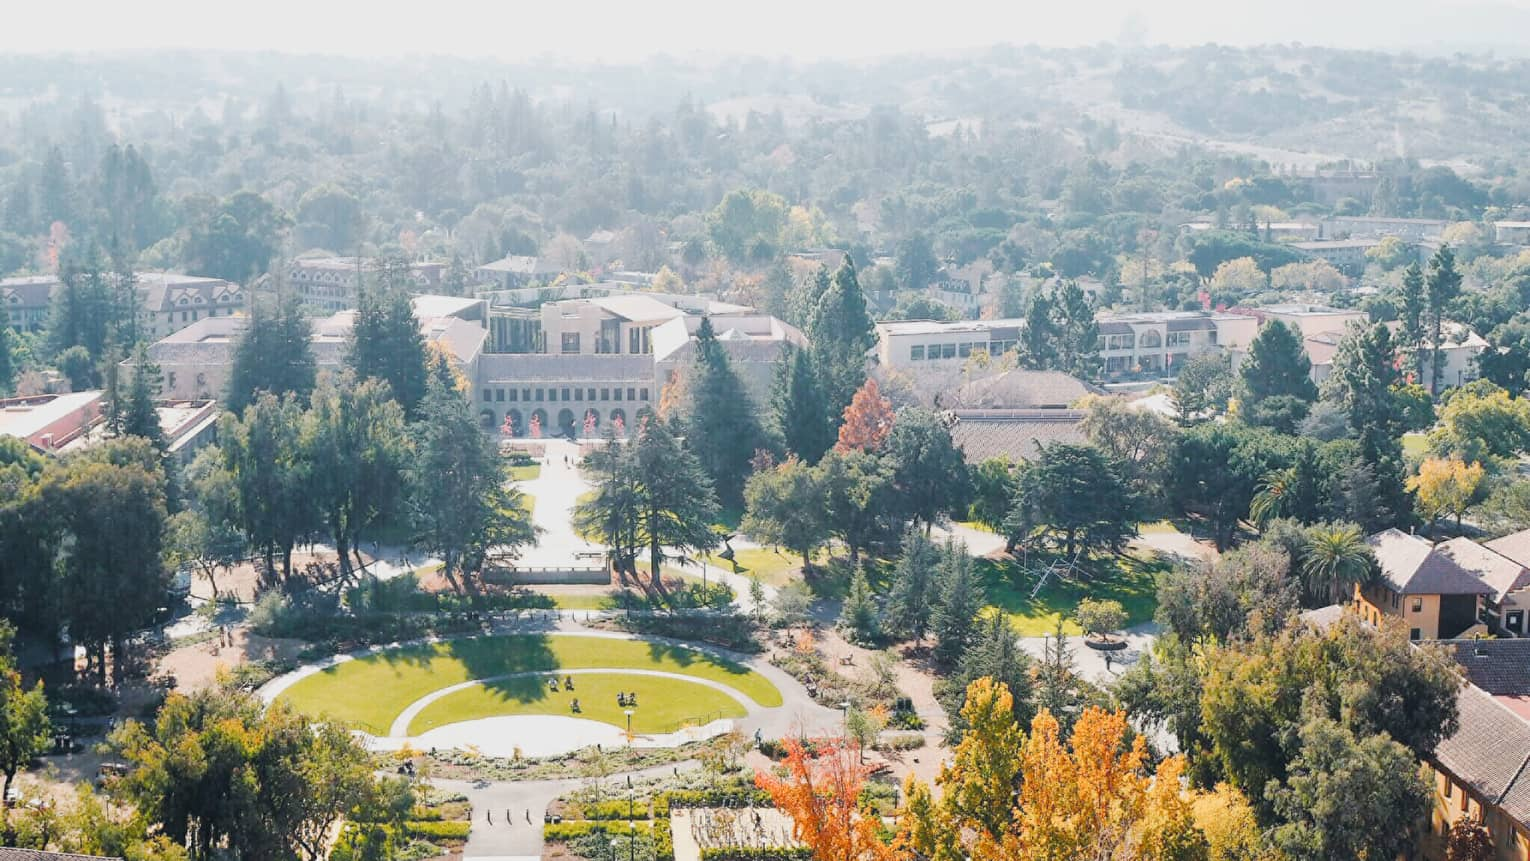 Aerial view over Stanford University campus grounds, buildings on sunny day